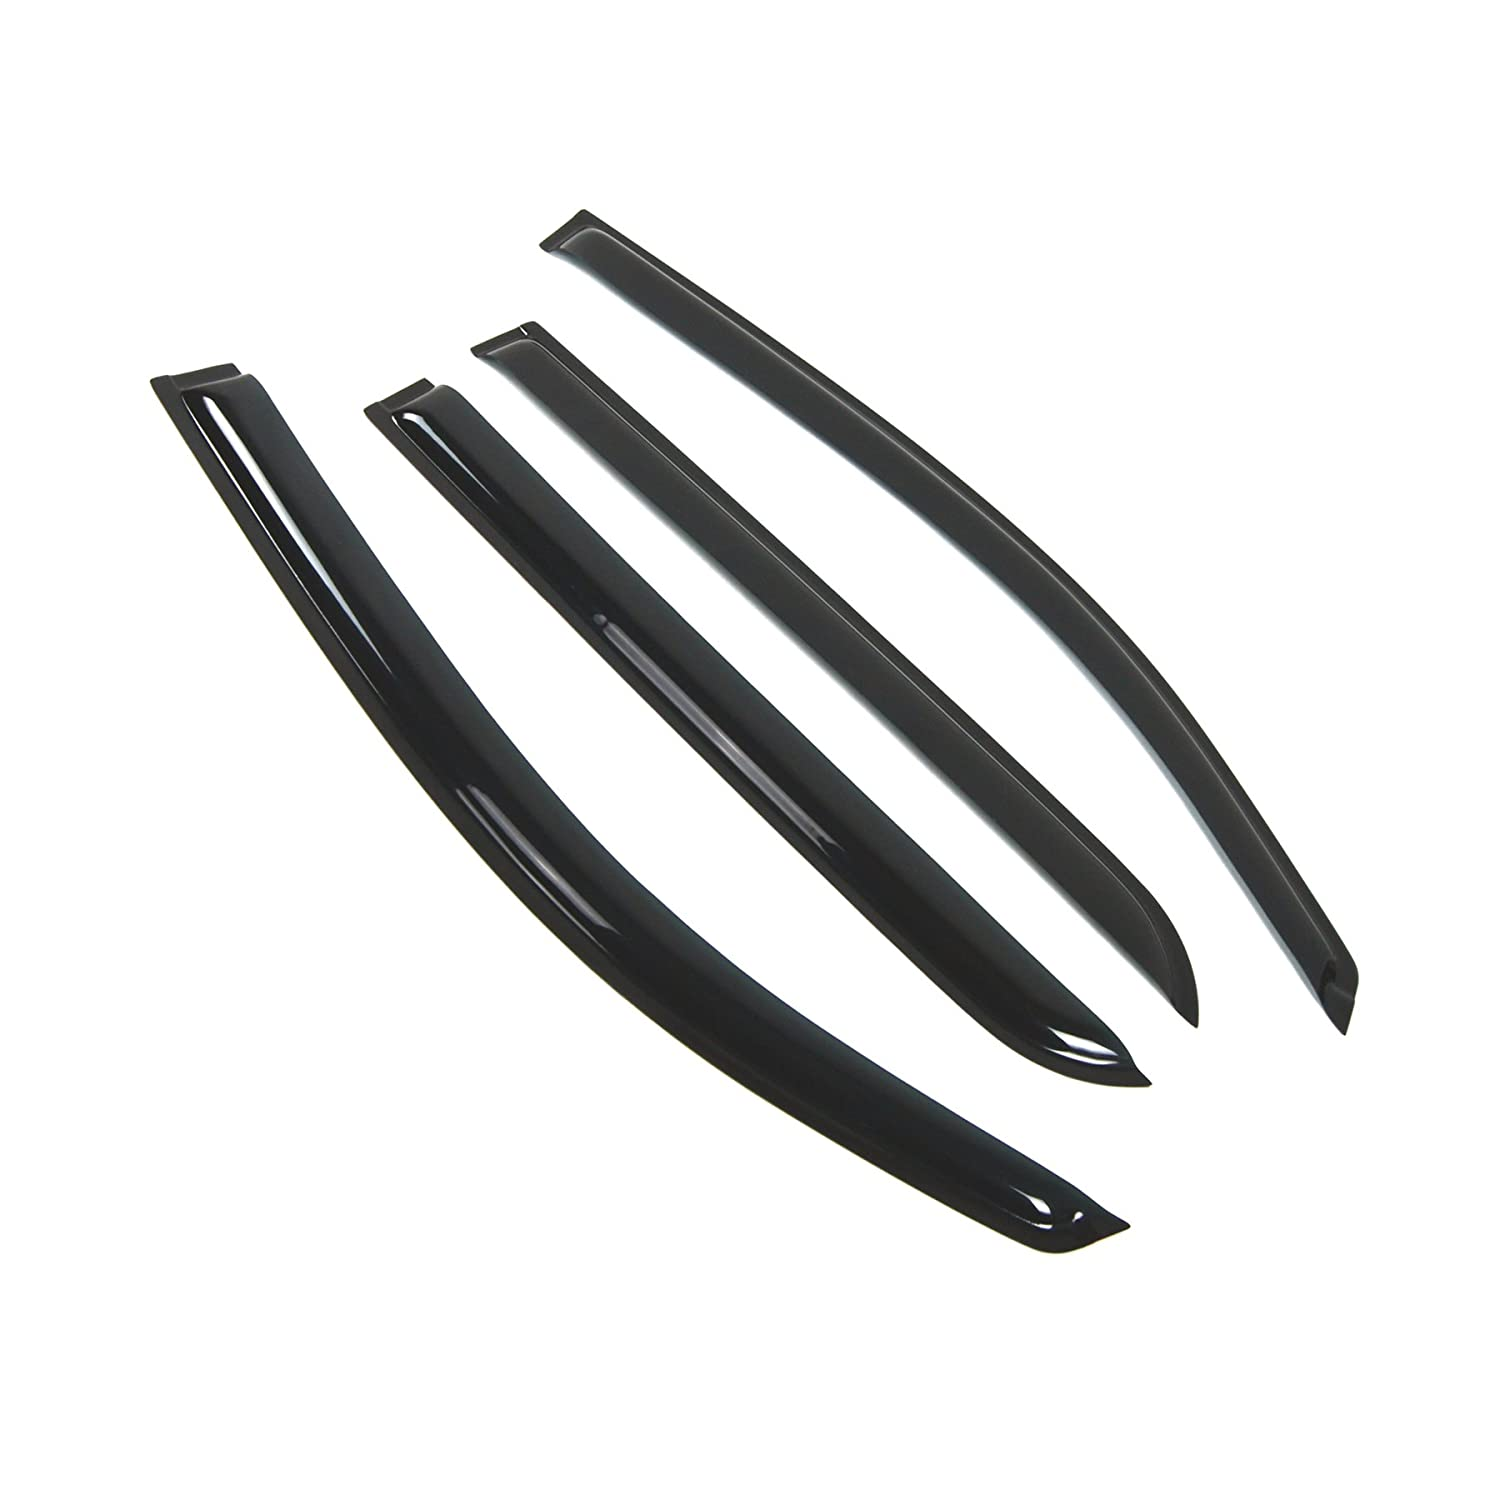 Tuningpros WD2-389 Outside Mount Window Visor Deflector Rain Guard Dark Smoke 4 Pcs Set Compatible With 2008-2014 Scion Scion xD